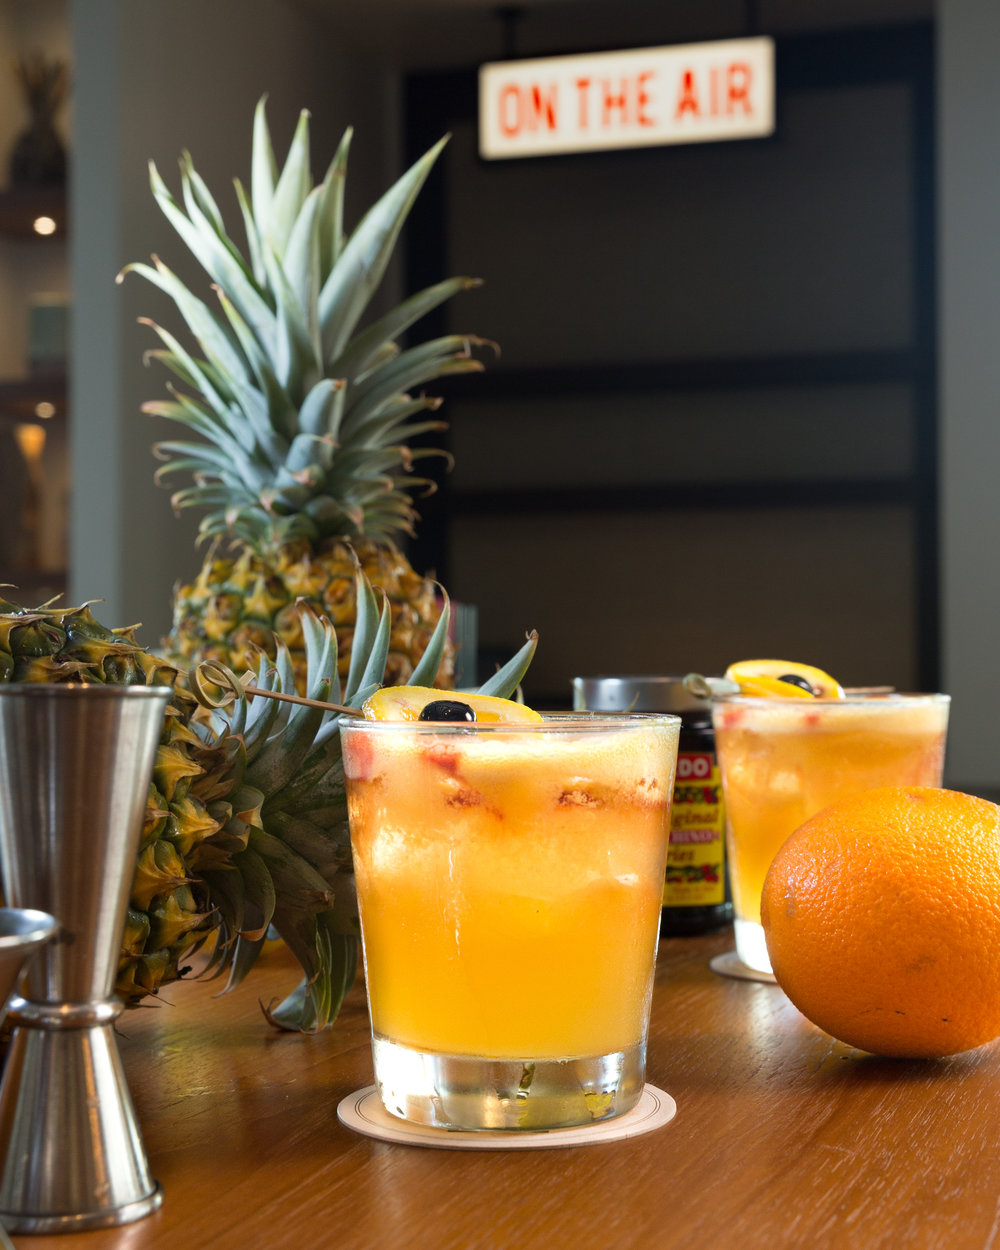 Humble Market Kitchin_ALOHA FRIDAY-Bacardi Maestro Silver Rum | Amaretto | Aperol Drizzle |-Shaken with Pineapple and Lemon__ Craig Bixel_07-2017.jpg